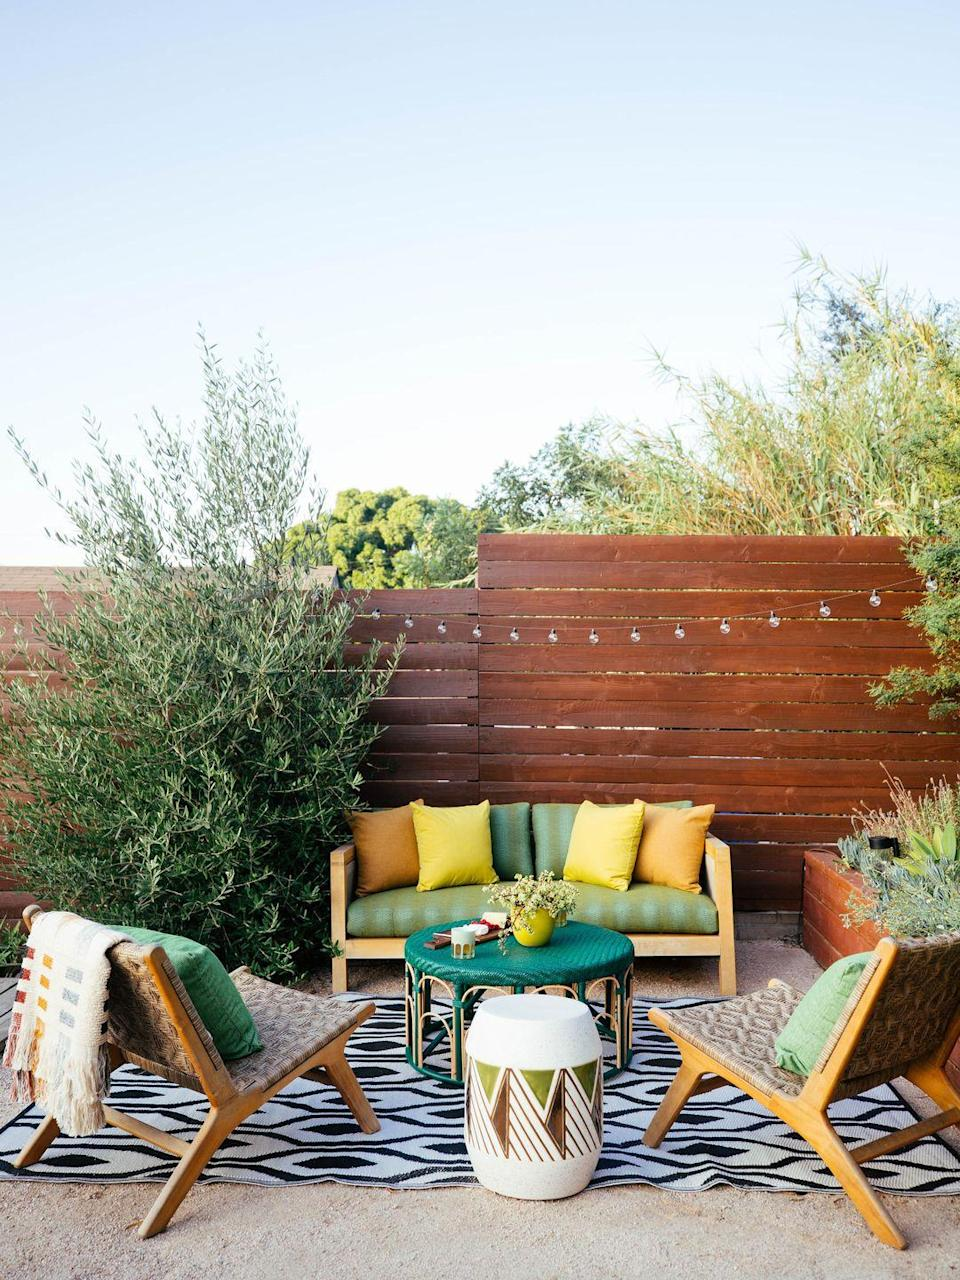 """<p>An easy way to make your outdoor space feel comfortable is to soften it with """"textured, durable and weather-friendly upholstery fabrics like <a href=""""https://urldefense.com/v3/__https:/nam11.safelinks.protection.outlook.com/?url=https*3A*2F*2Furldefense.com*2Fv3*2F__https*3A*2Fnam11.safelinks.protection.outlook.com*2F*3Furl*3Dhttps*3A*2F*2Furldefense.com*2Fv3*2F__https*3A*2Fnam11.safelinks.protection.outlook.com*2F*3Furl*3Dhttps*3A*2F*2Fwww.sunbrella.com*2Fsunbrella-upholstery-nurture-pebble-42102-0002*26data*3D04*7C01*7Csdooley*40glenraven.com*7Cd44ee0fe54144ef76ae308d8eaeb4bdf*7C6fd4b340533844999b1ebf247ab86d66*7C0*7C0*7C637517643612298247*7CUnknown*7CTWFpbGZsb3d8eyJWIjoiMC4wLjAwMDAiLCJQIjoiV2luMzIiLCJBTiI6Ik1haWwiLCJXVCI6Mn0*3D*7C1000*26sdata*3DrLOU9tDTmG8eeSefqbnal3E*2Fp*2BxrMdnC378ww5CbEWY*3D*26reserved*3D0__*3BJSUlJSUlJSUlJSUlJSUlJSUlJQ!!N96JrnIq8IfO5w!yBKFuBJEkKB0v5sDrOYUERENS1n85FwvoVceOjyDuksZqYXFBuZTT60DKjHVEdIT*24*26data*3D04*7C01*7CGVoorhis*40glenraven.com*7Ccf962d5af6bf4eb6830e08d8eafd14c4*7C6fd4b340533844999b1ebf247ab86d66*7C0*7C0*7C637517720024823980*7CUnknown*7CTWFpbGZsb3d8eyJWIjoiMC4wLjAwMDAiLCJQIjoiV2luMzIiLCJBTiI6Ik1haWwiLCJXVCI6Mn0*3D*7C1000*26sdata*3DA4Lro3bh5u*2BZ82iGrQEu1ammBQnBsuvtCW9bHltheoc*3D*26reserved*3D0__*3BJSUlJSUlJSUlJSoqKiolJSoqKioqKioqKioqKiUlKioqJSUlJSUlJSUlJSUlJSUlJSUl!!N96JrnIq8IfO5w!yOELrz0PR6jSEtUjEnnhlrgJmFsQSwt4JCugCbWHFTseTLvH7G8yg-FWMuCV1ayC*24&data=04*7C01*7Csdooley*40glenraven.com*7C9ee84b902c914ac4861d08d8eb162cb5*7C6fd4b340533844999b1ebf247ab86d66*7C0*7C0*7C637517827778088992*7CUnknown*7CTWFpbGZsb3d8eyJWIjoiMC4wLjAwMDAiLCJQIjoiV2luMzIiLCJBTiI6Ik1haWwiLCJXVCI6Mn0*3D*7C1000&sdata=DFc*2FAFN2SY7q*2FS4GiO6brrAM*2B77pRLaAV3PMPB14B0Q*3D&reserved=0__;JSUlJSUlJSUlJSoqKioqKioqKioqKioqKioqKioqKioqKioqKioqKioqKioqKiolJSoqKioqKioqKioqKiUlKiolJSUlJSUlJSUlJSUlJSUlJSUlJQ!!N96JrnIq8IfO5w!wQ_NwuWx640Es4uJ5O_aavPeXlccMgDwygVfJq6ZBPr1qkZMqHFbOkVqfTvW1CSOqyDW$"""" rel=""""nofollow noopener"""" target=""""_blank"""" data-ylk=""""slk:Nurture Pebble"""" class="""